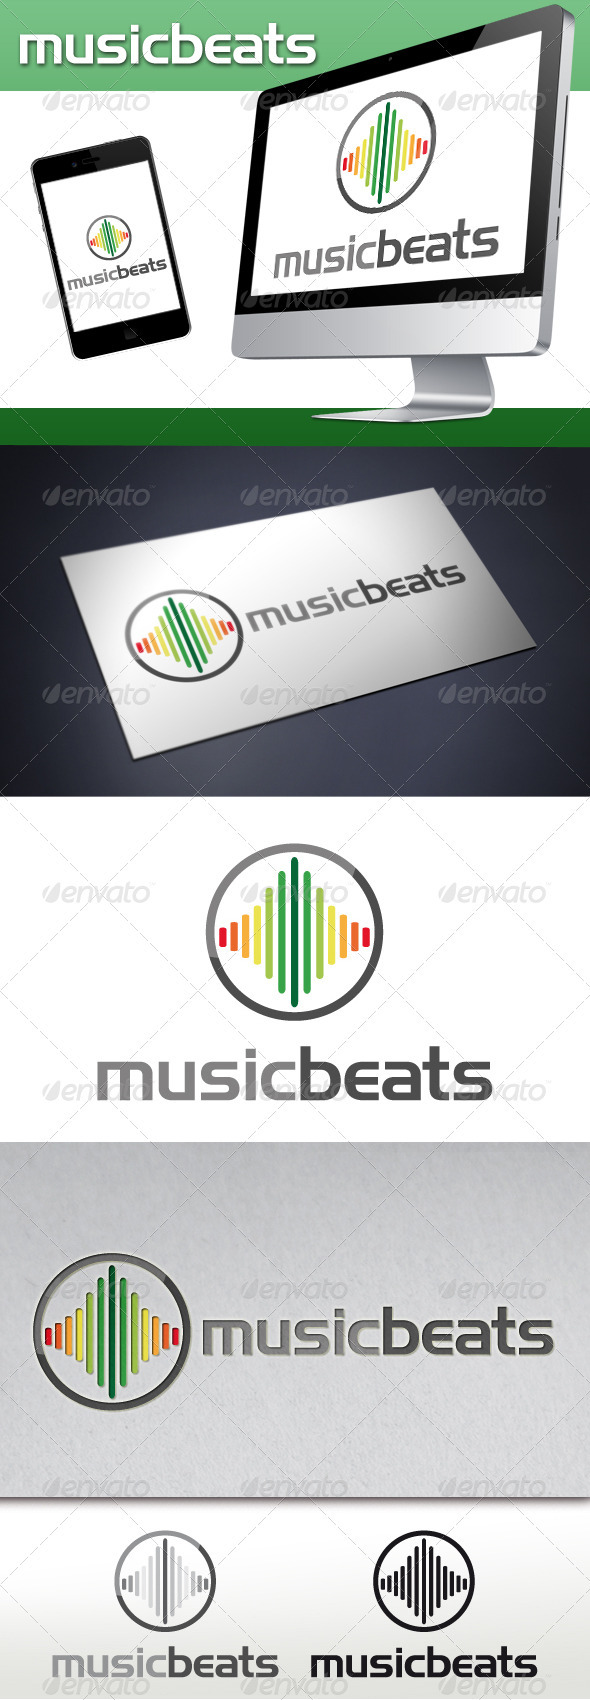 GraphicRiver Music Beats Logo 3470991